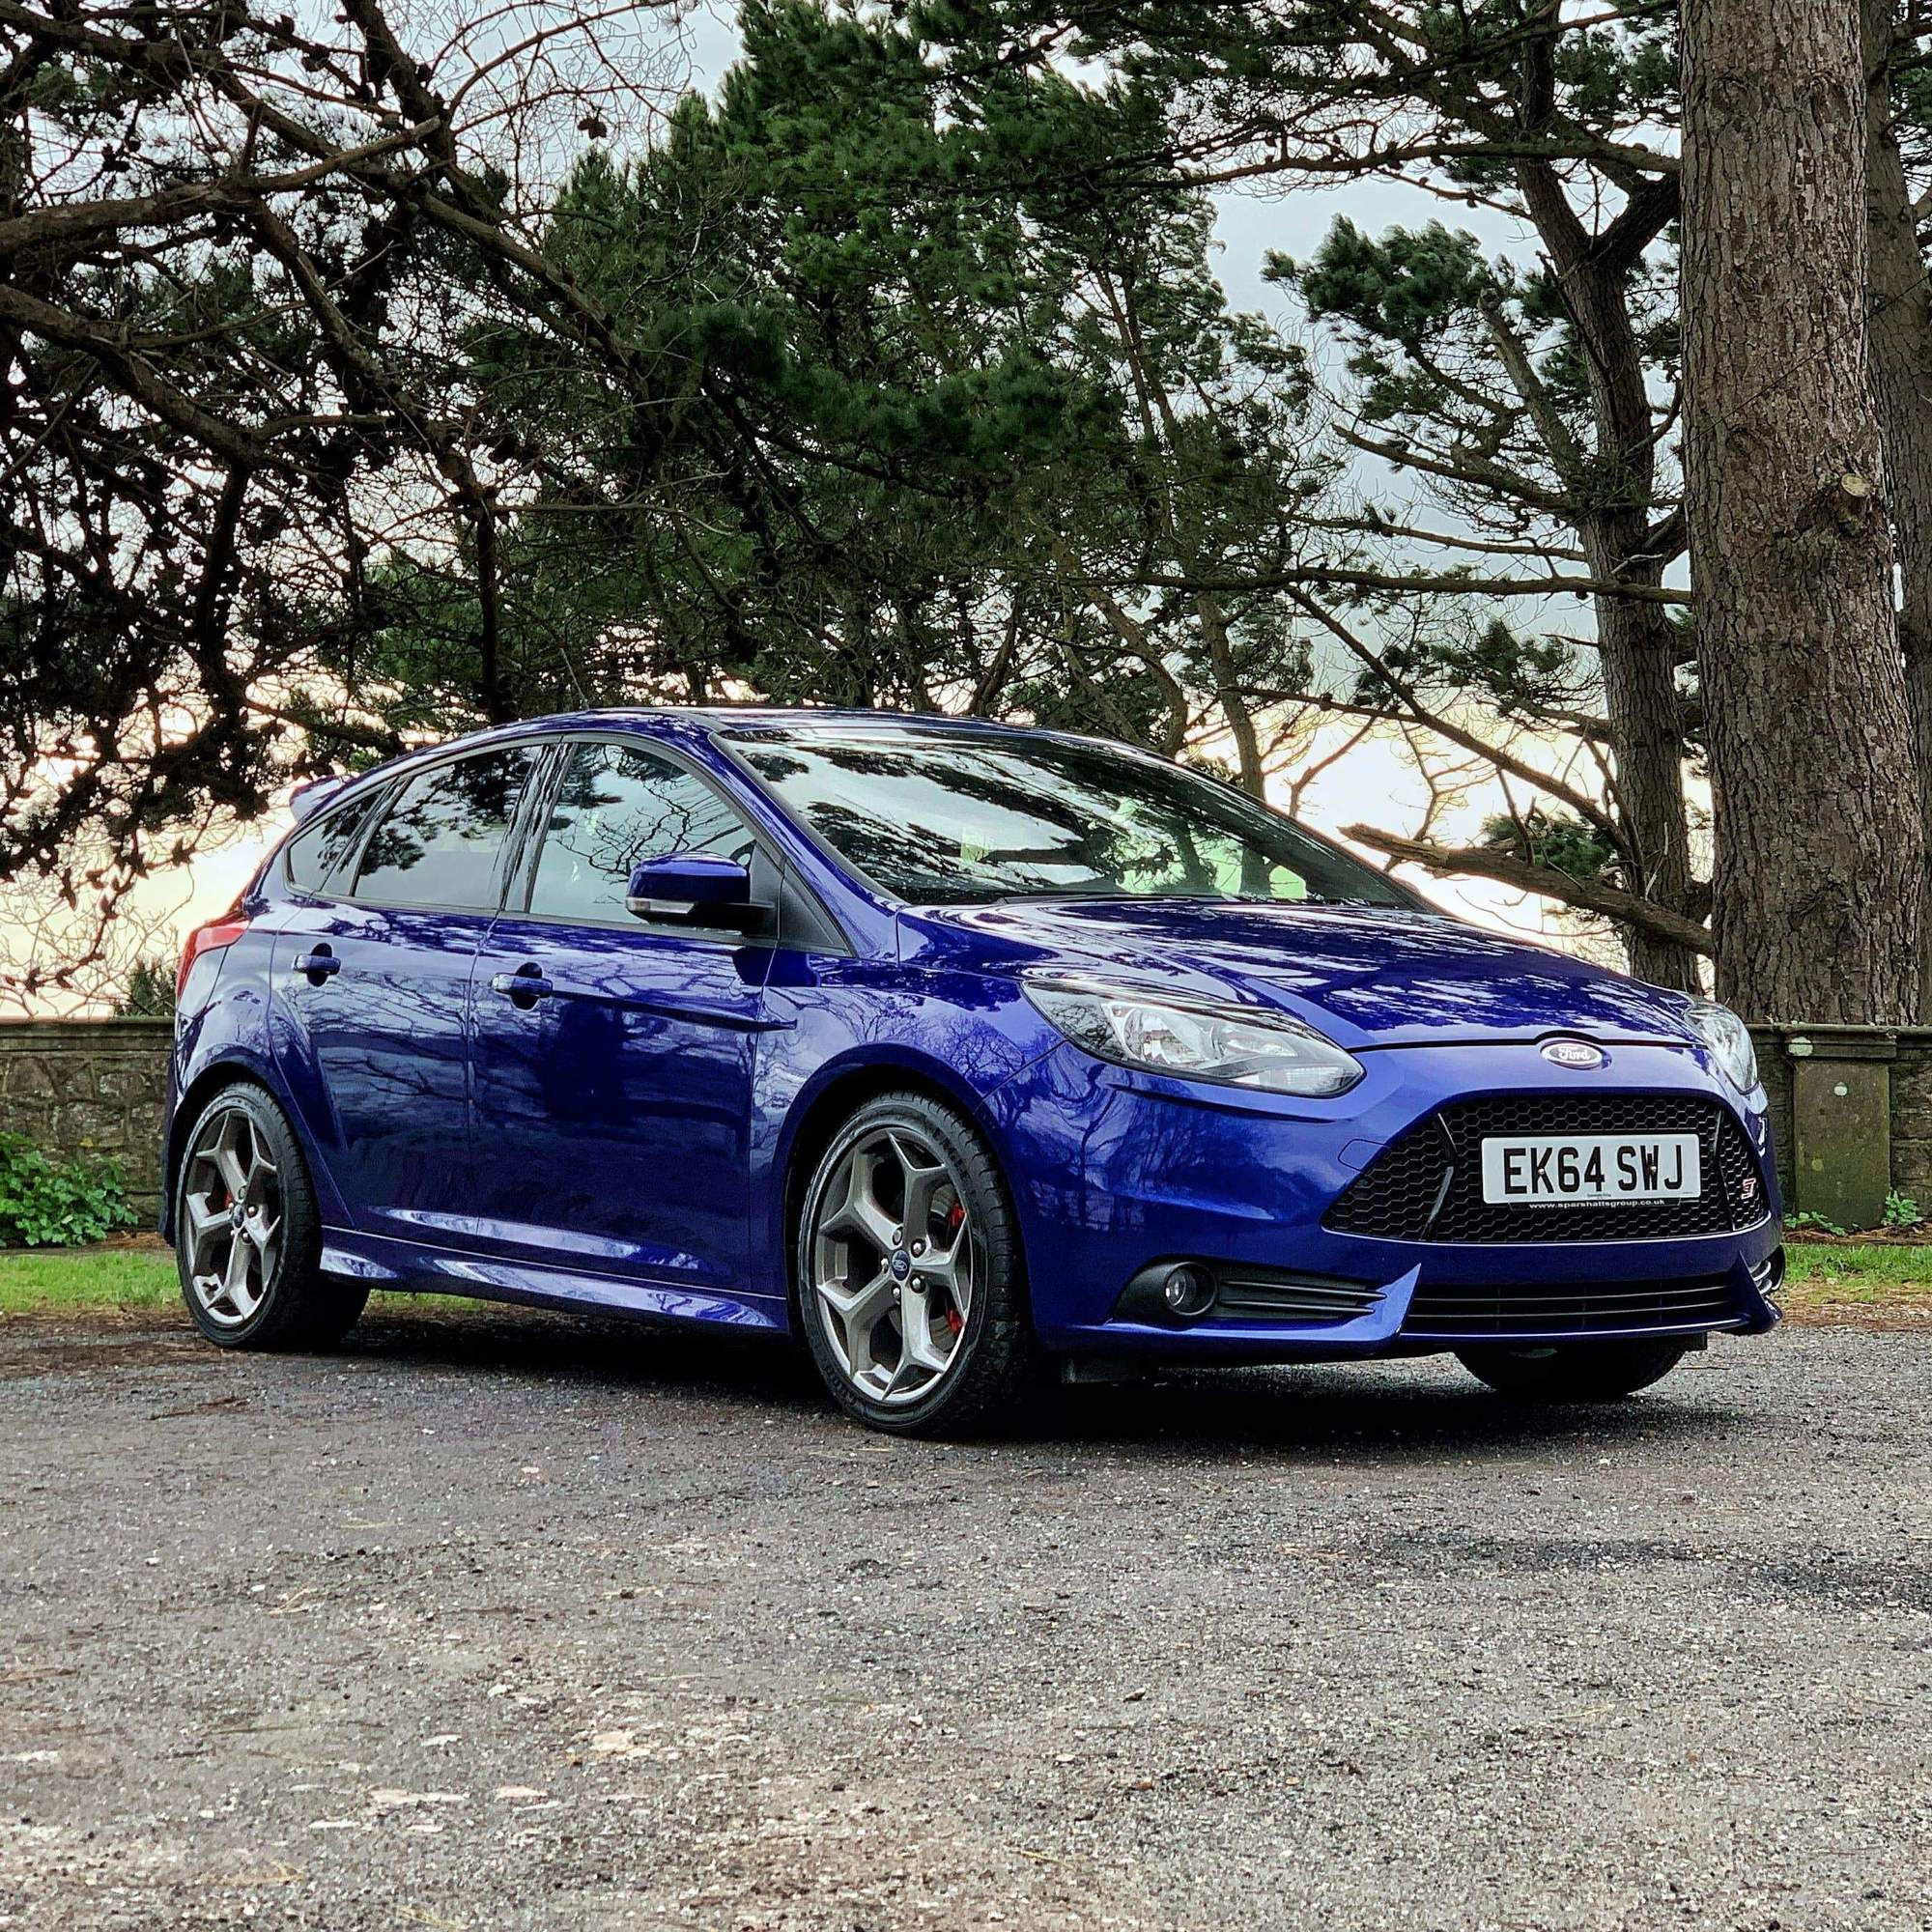 5th February Focus ST Results